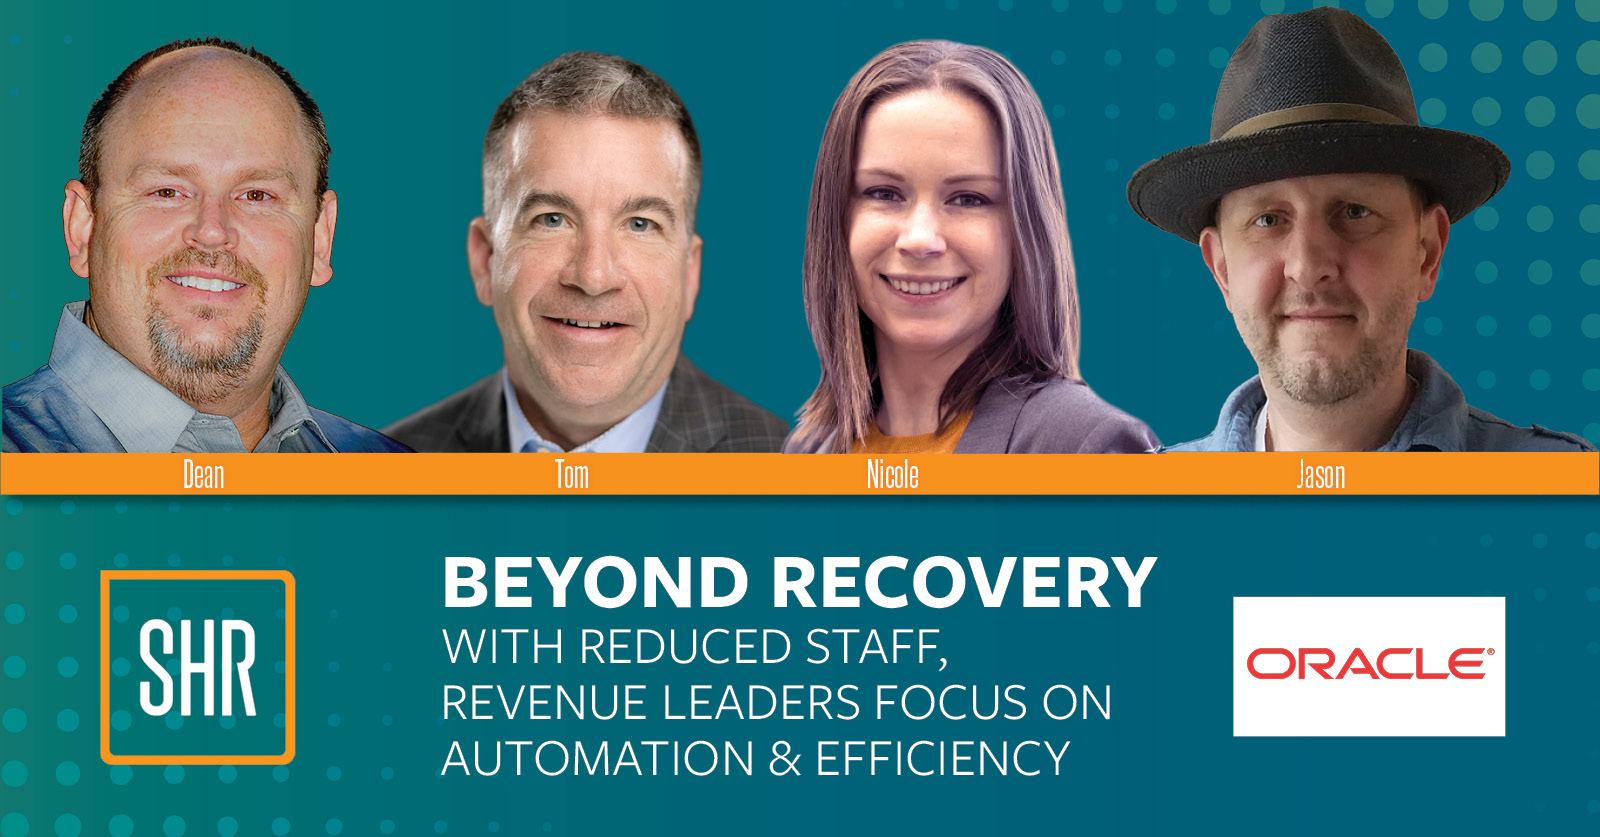 SHR21_Beyond_Recovery_Oracle_LinkedInAd_Final